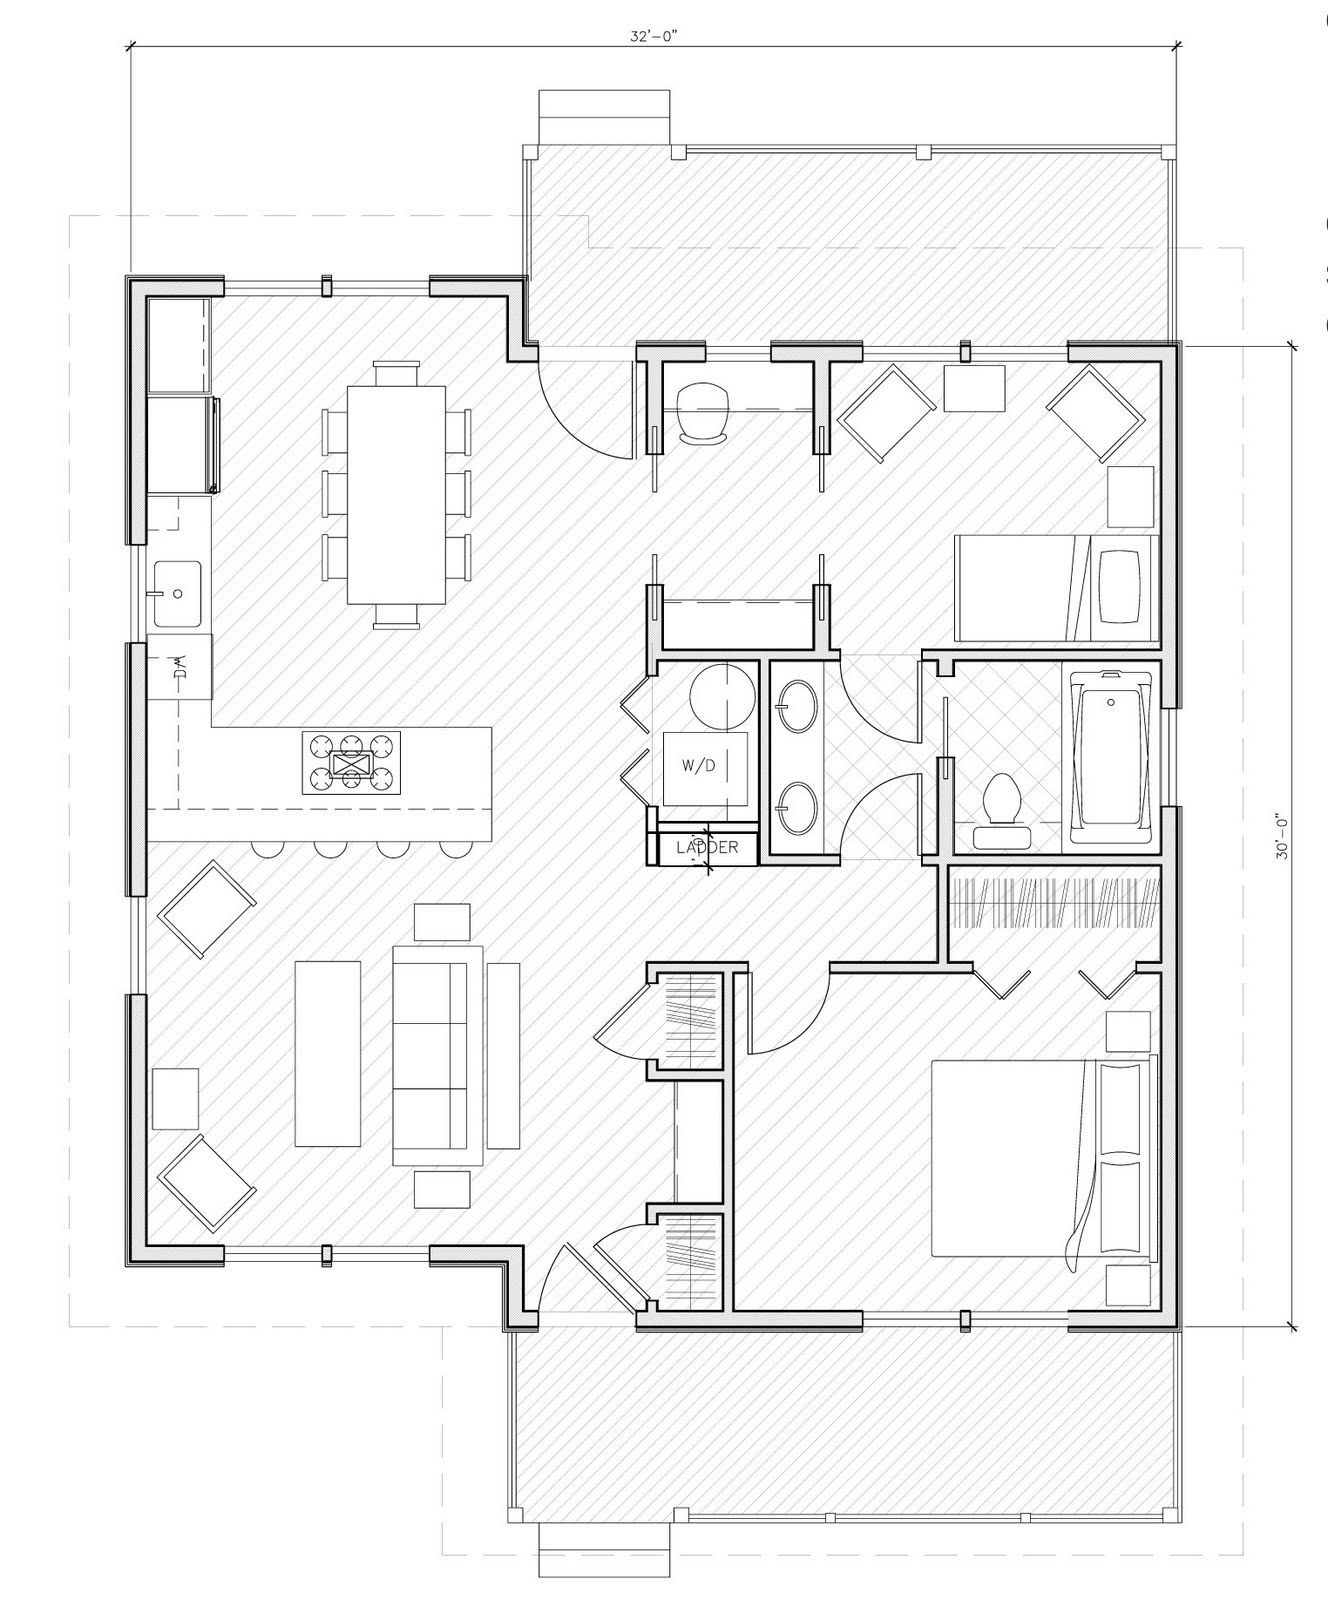 Small Modern House Plans Under 1000 Sq Ft New Small House Plans Under 1000 Sq Ft